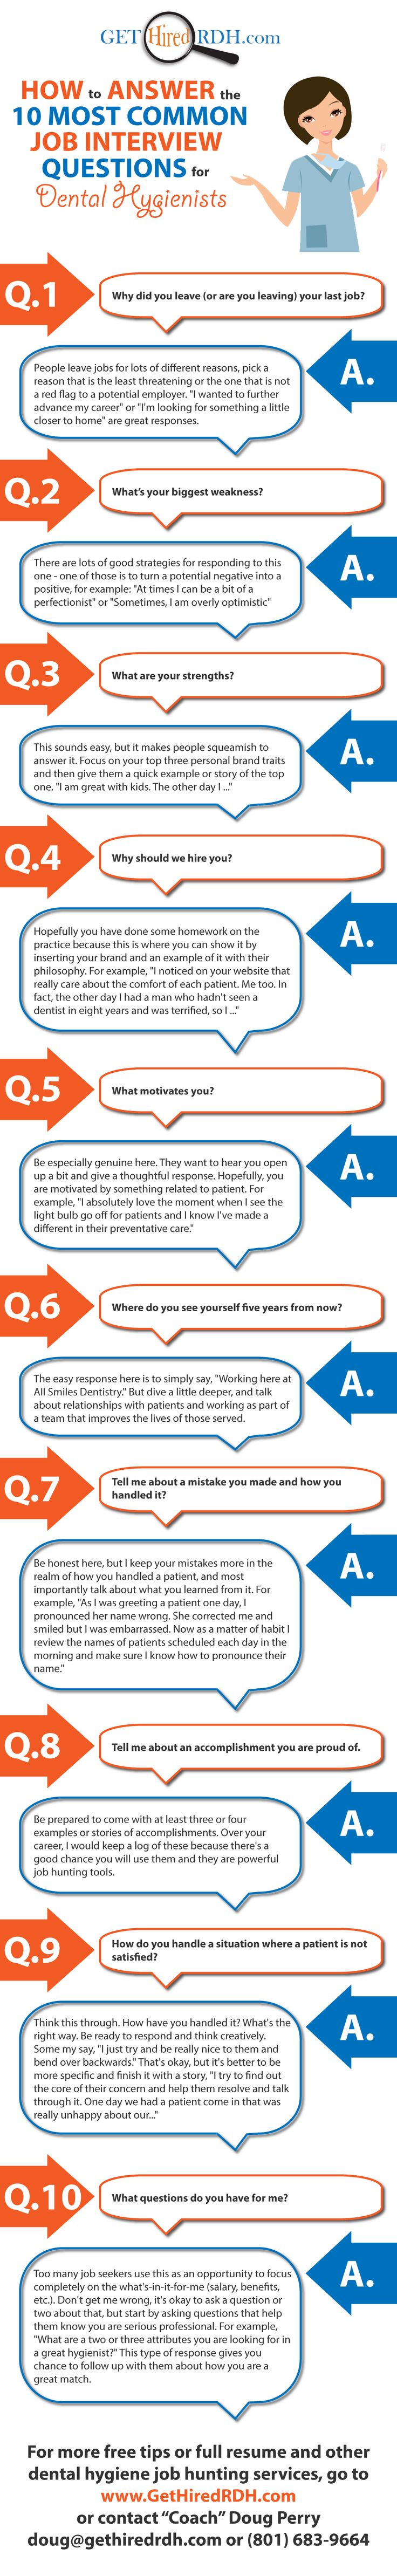 17 best ideas about most common interview questions how to answer the 10 most common interview questions for dental hygienists get more at gethiredrdh